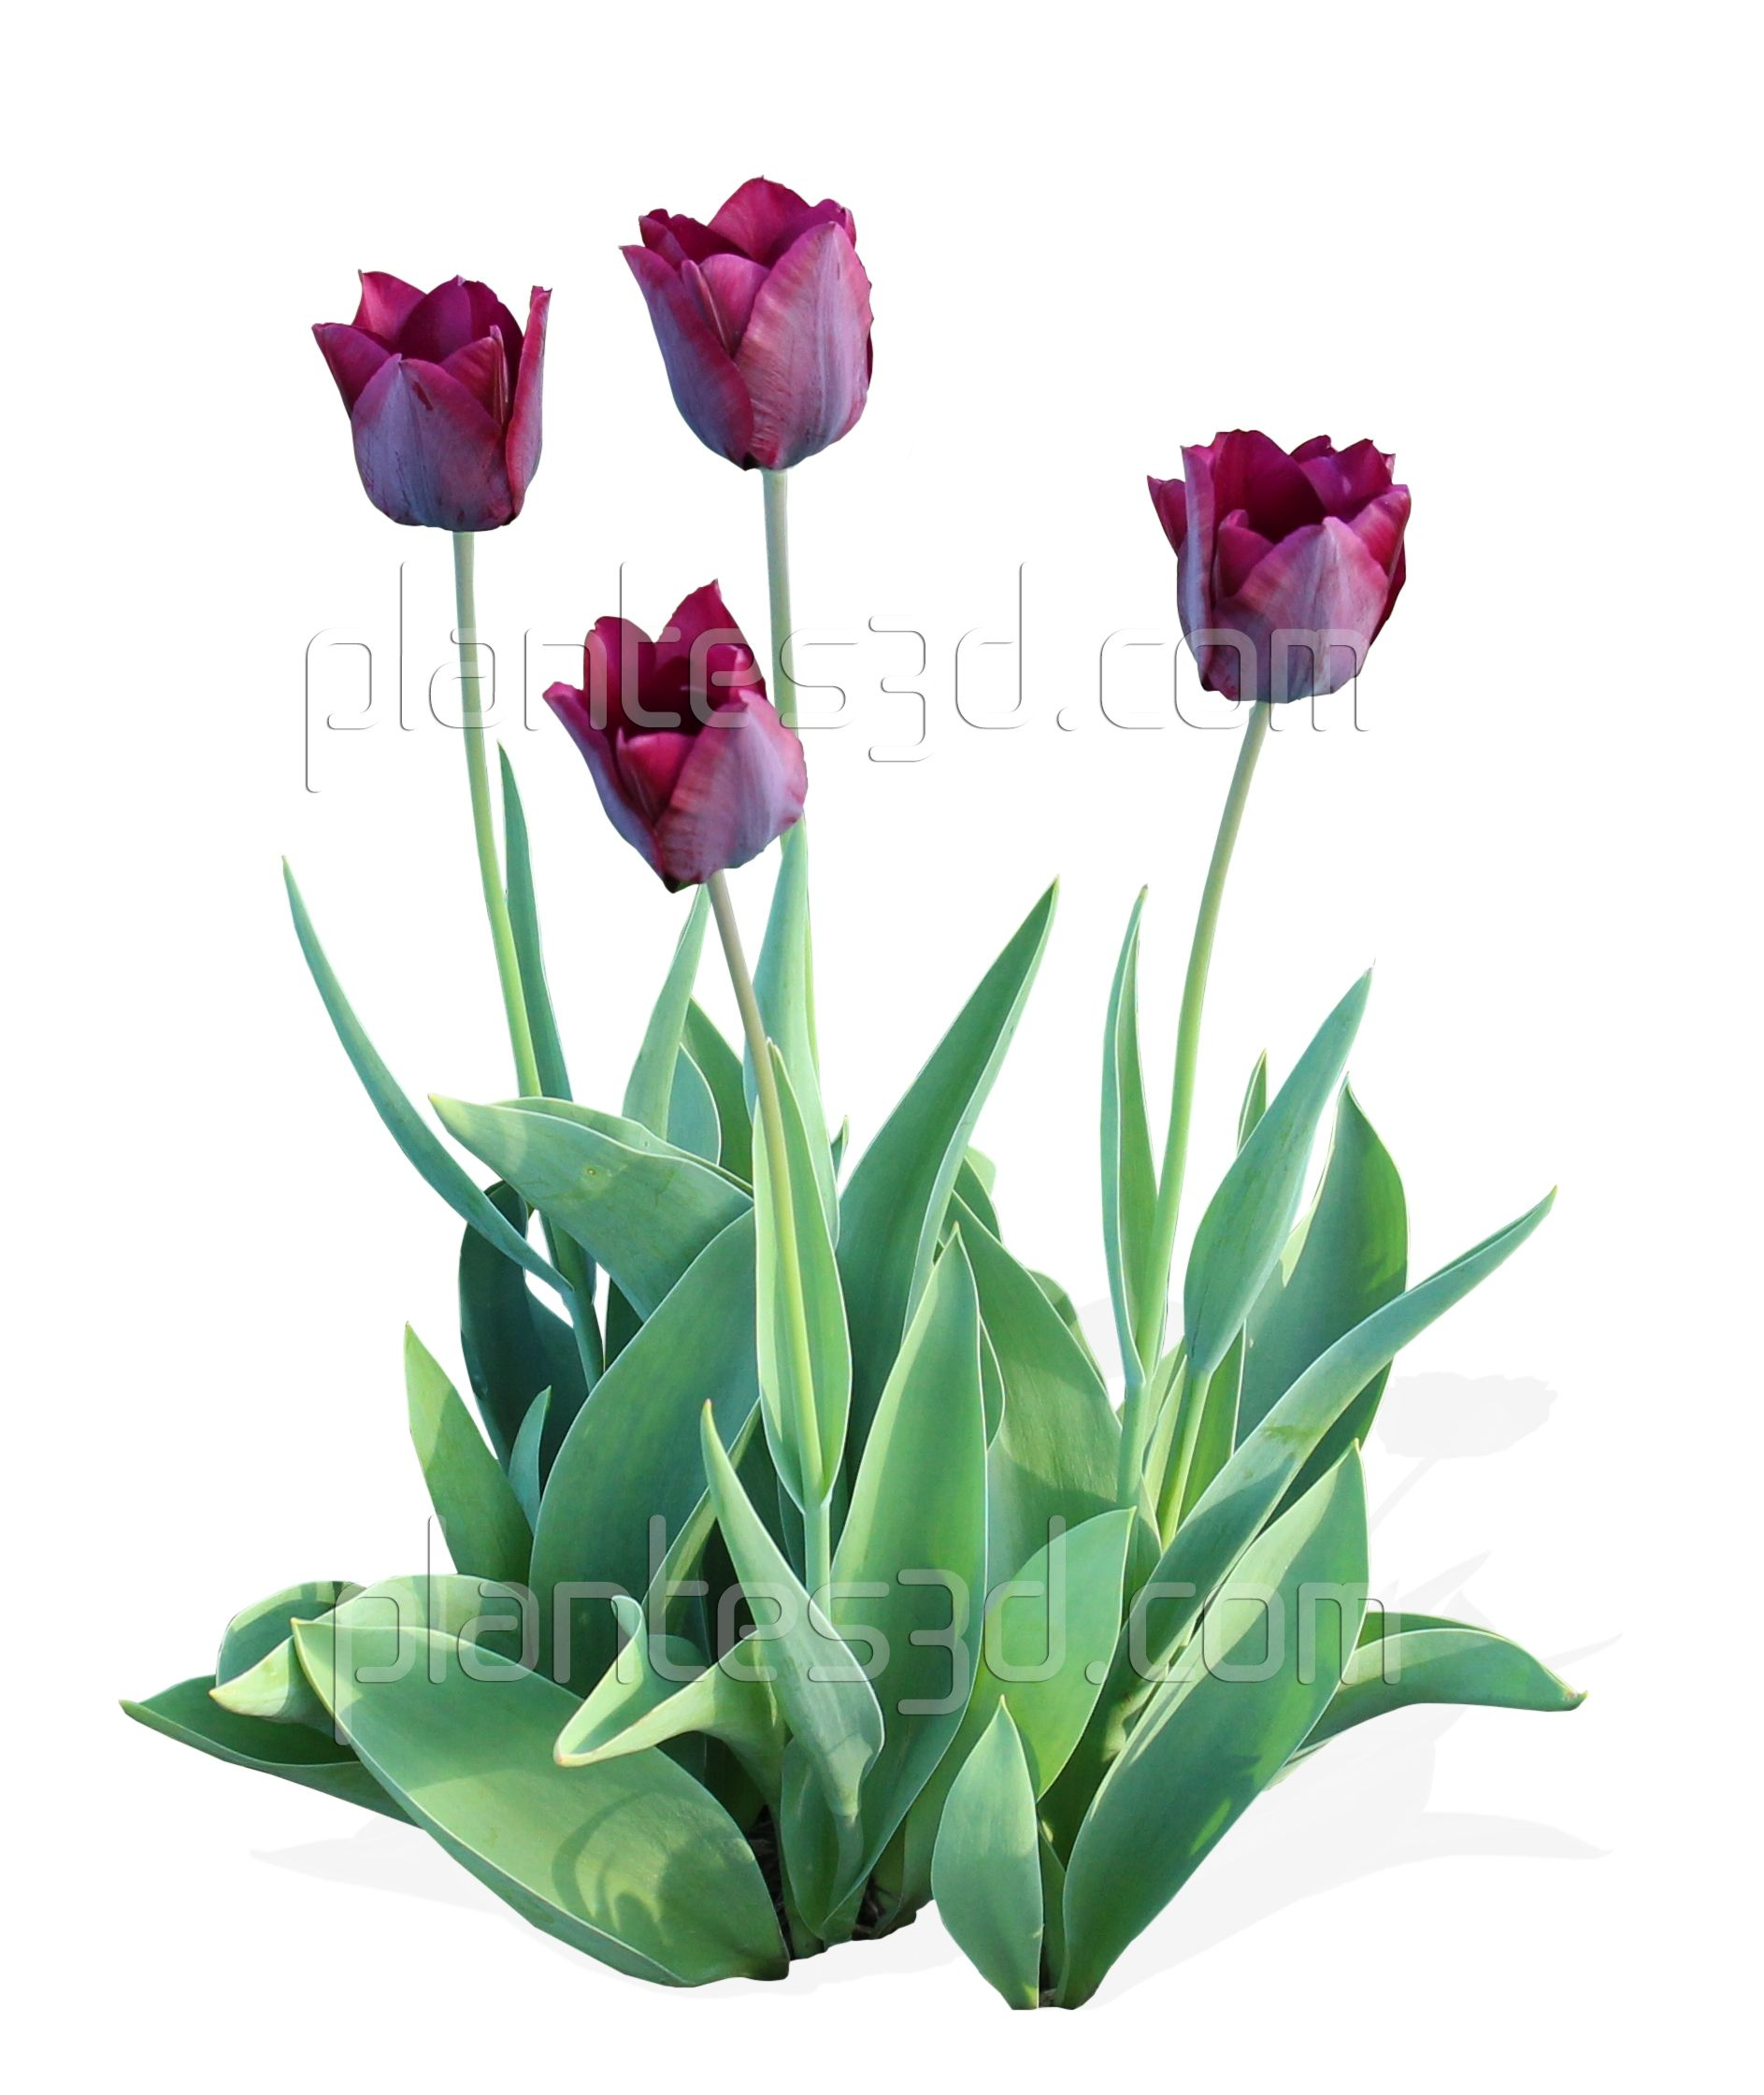 Top view plants 02 2d plant entourage for architecture - Architecture Tulipes D Tour Es Tulip Png